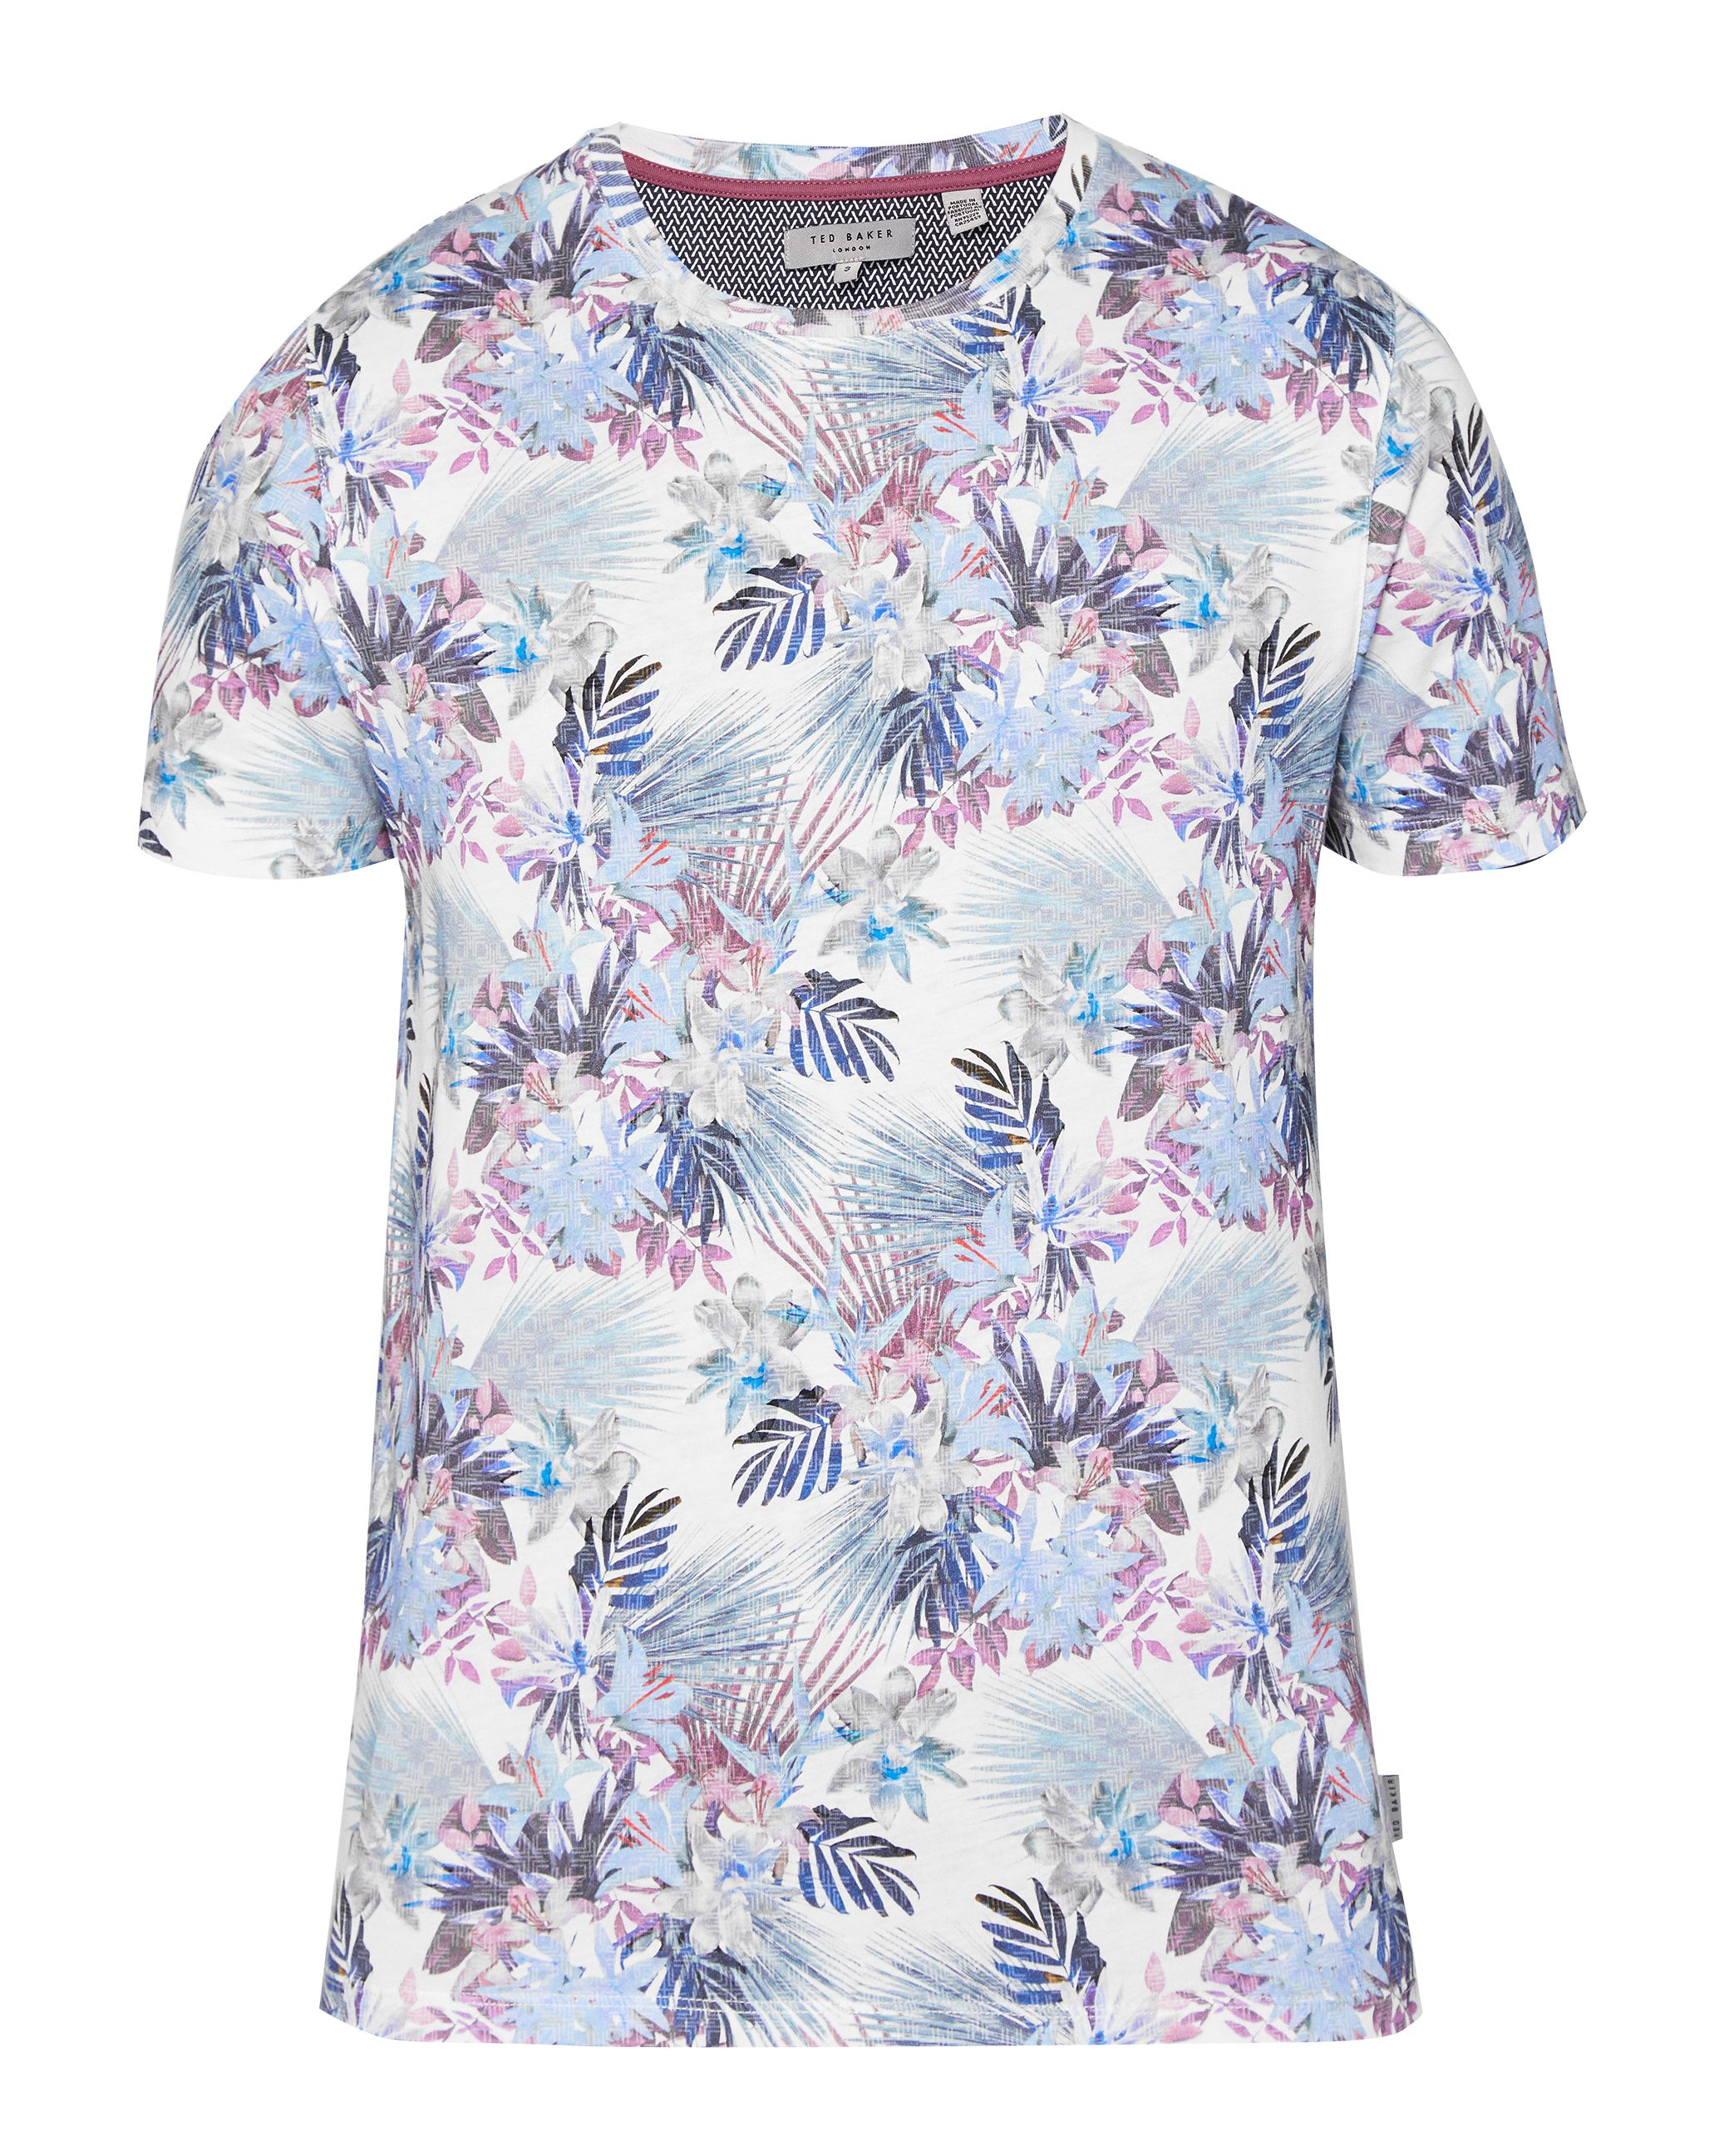 Men's Ted Baker Driveup Geo And Floral Print T-Shirt, White